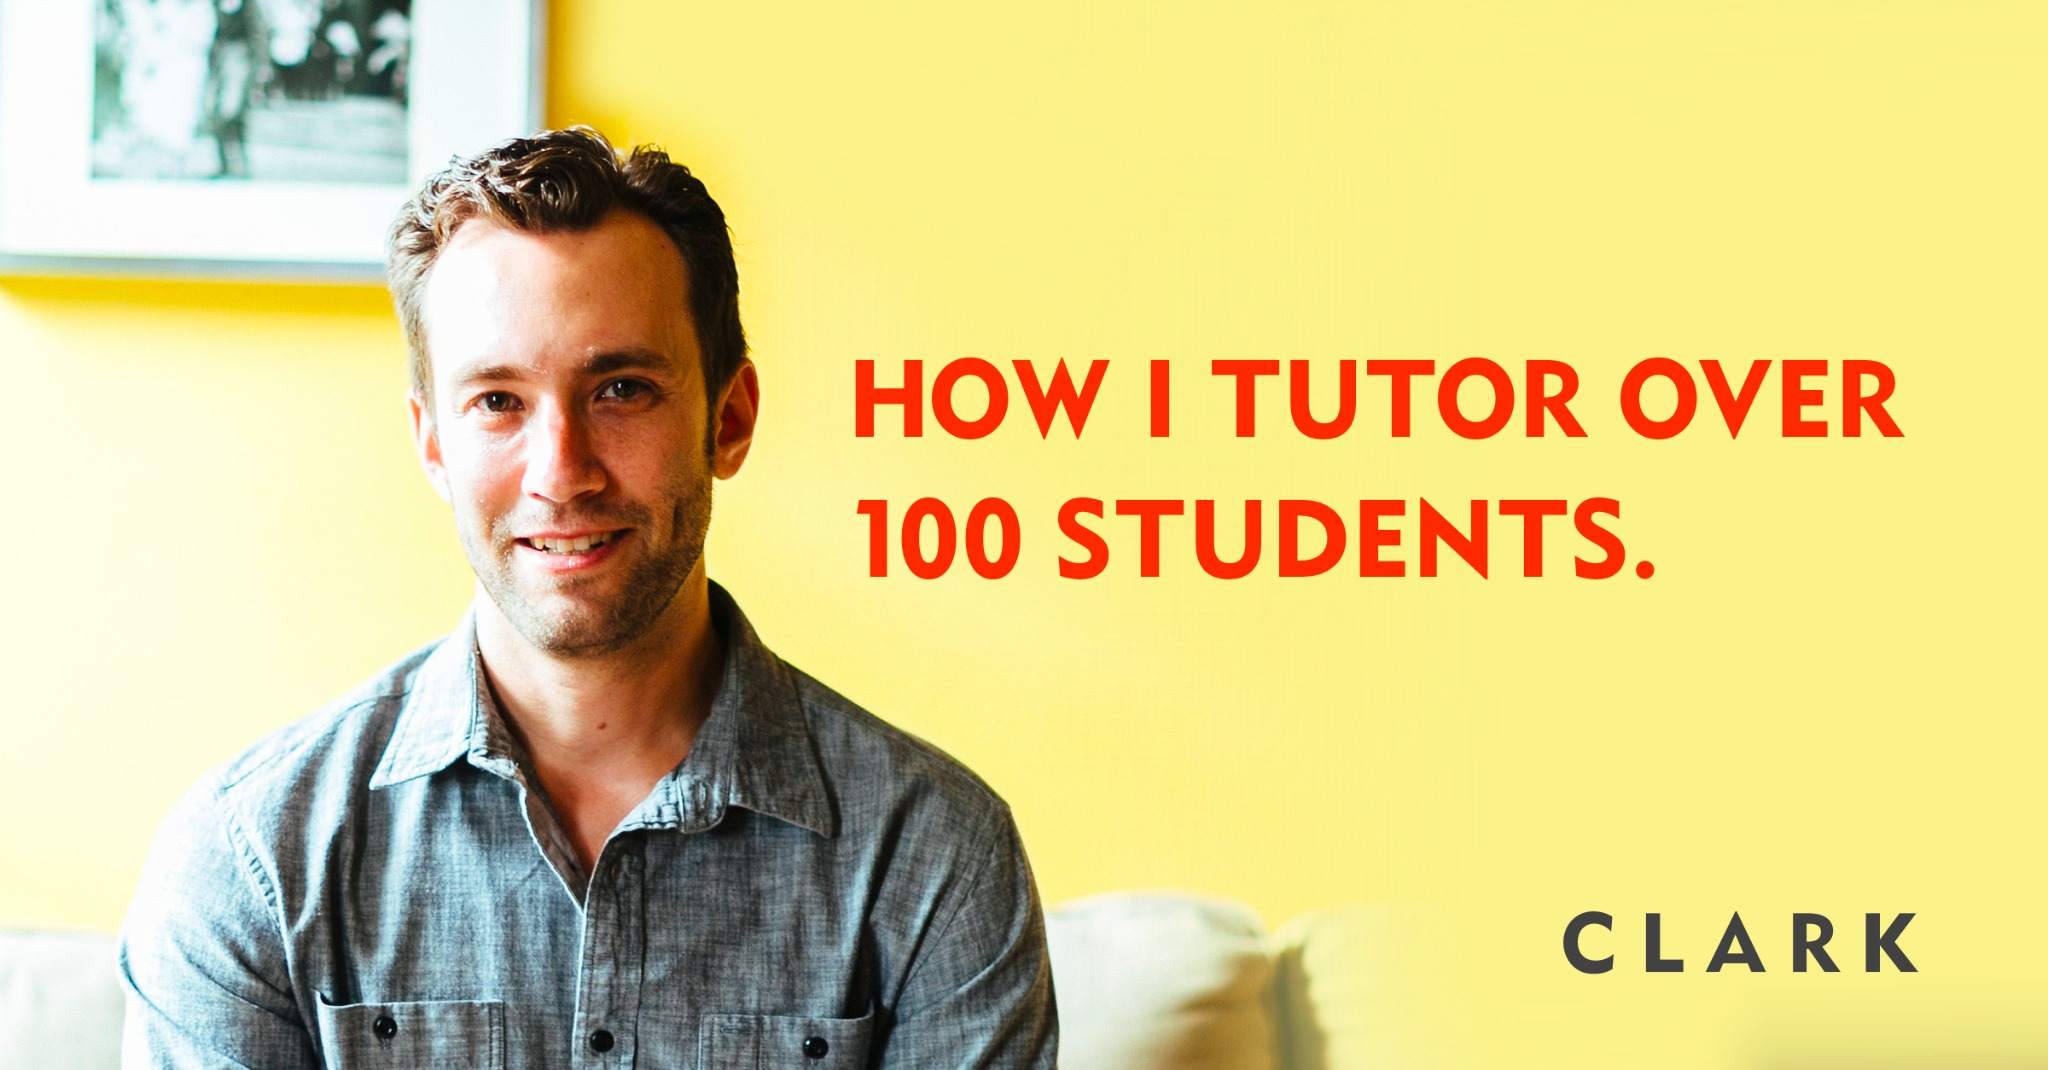 How i tutor over 100 students